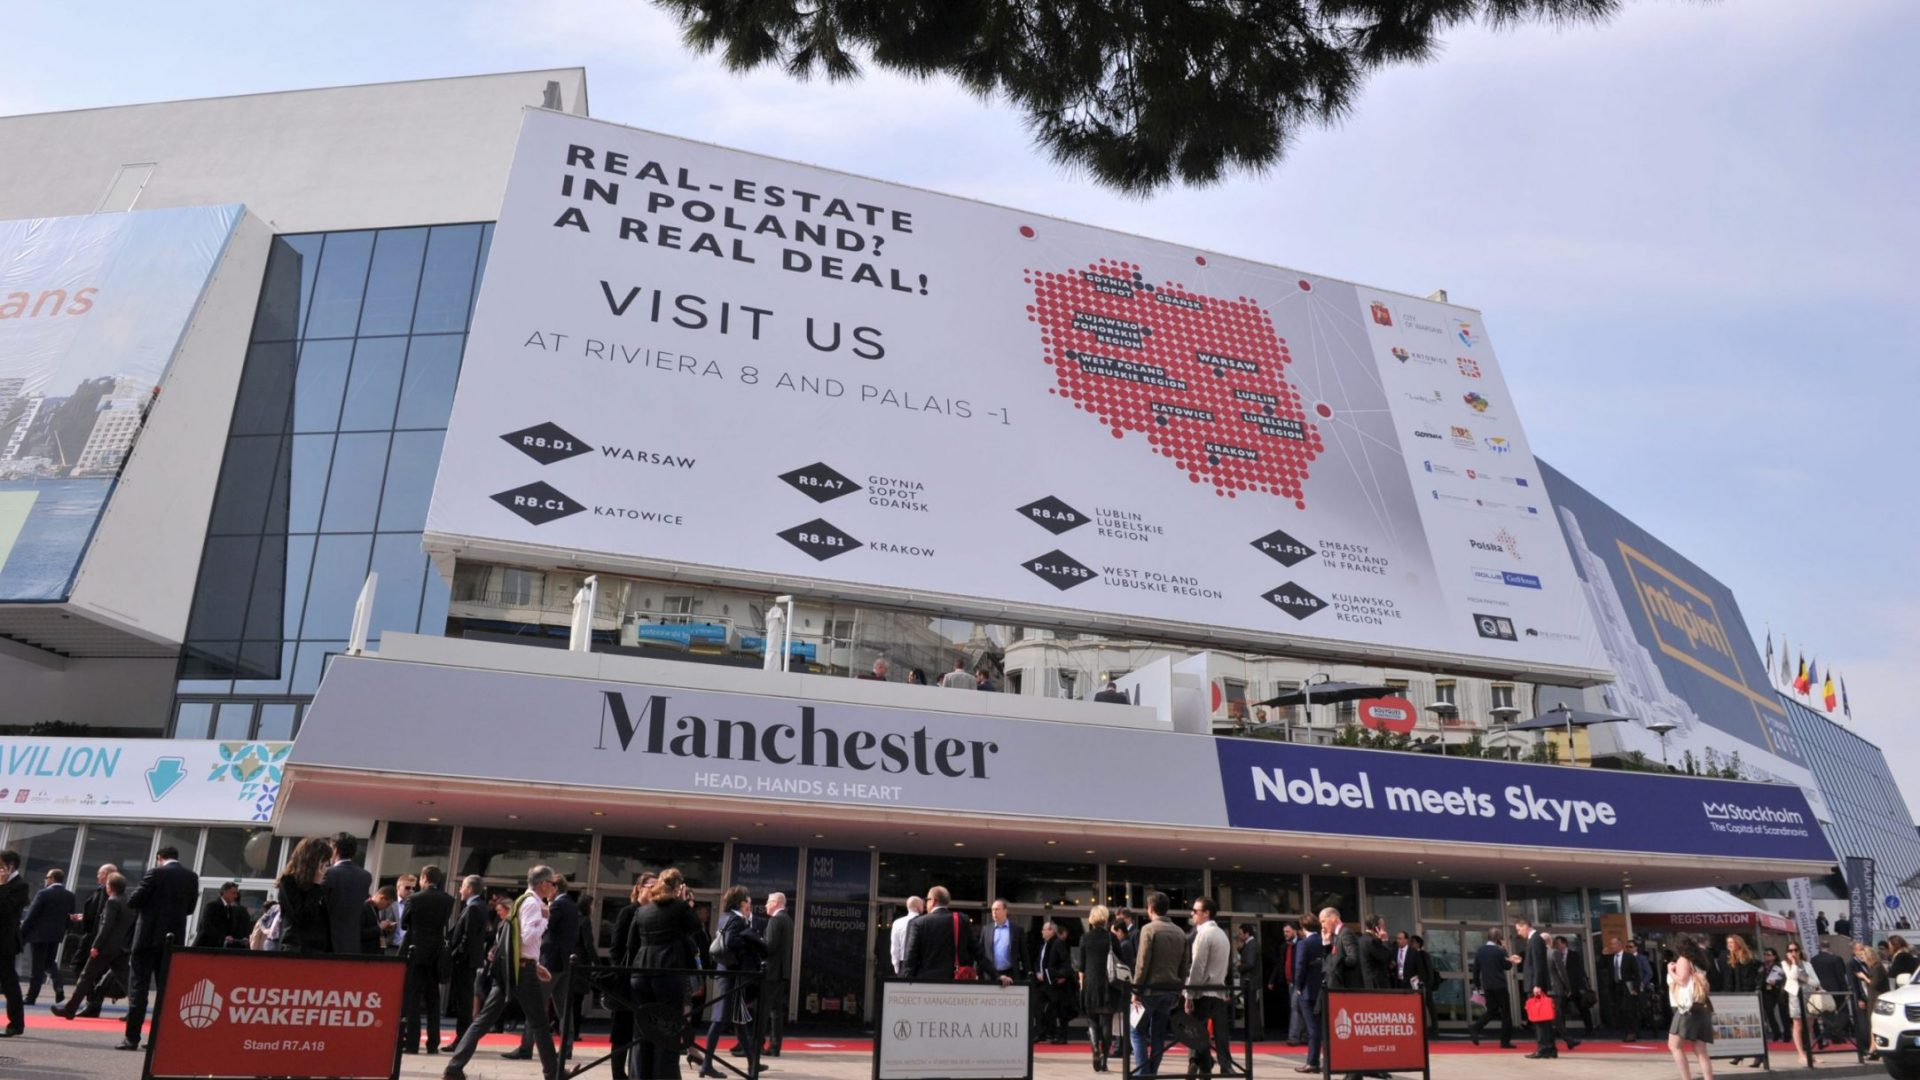 MIPIM 2019, the 30th edition of the event, attracted over 28,000 professionals from around the world